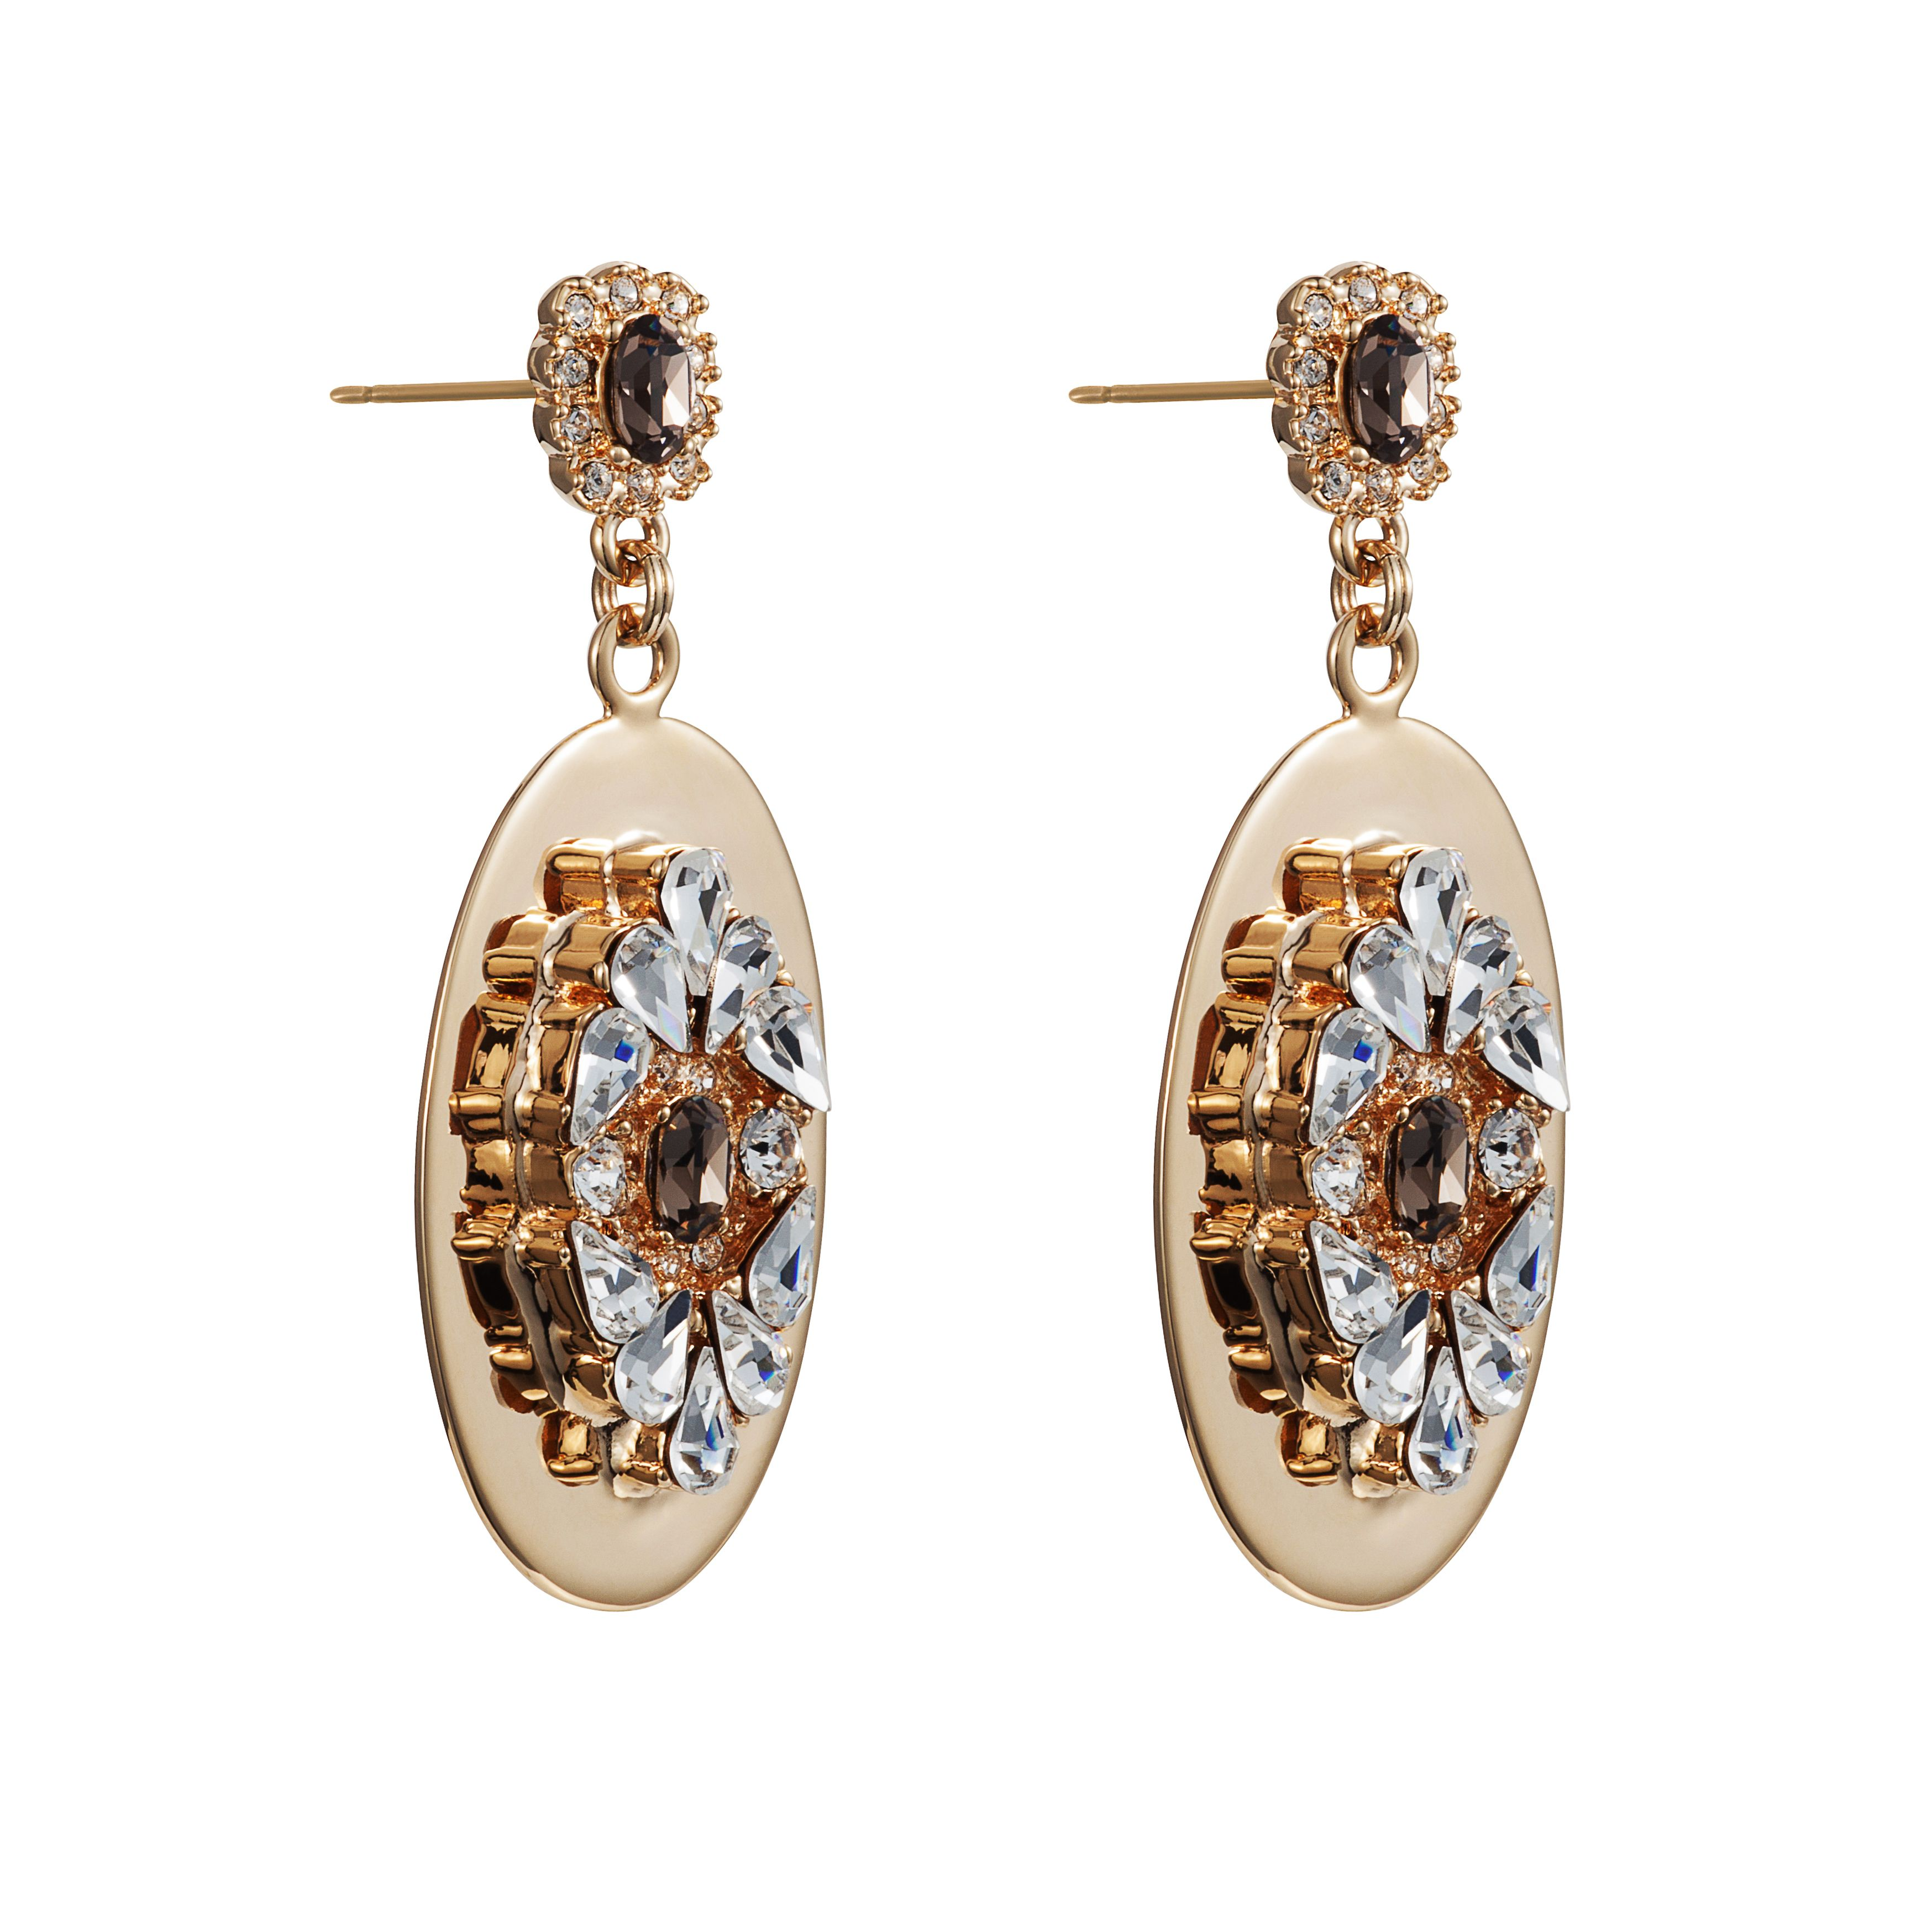 Handmade 18ct gold crystal mix earrings.